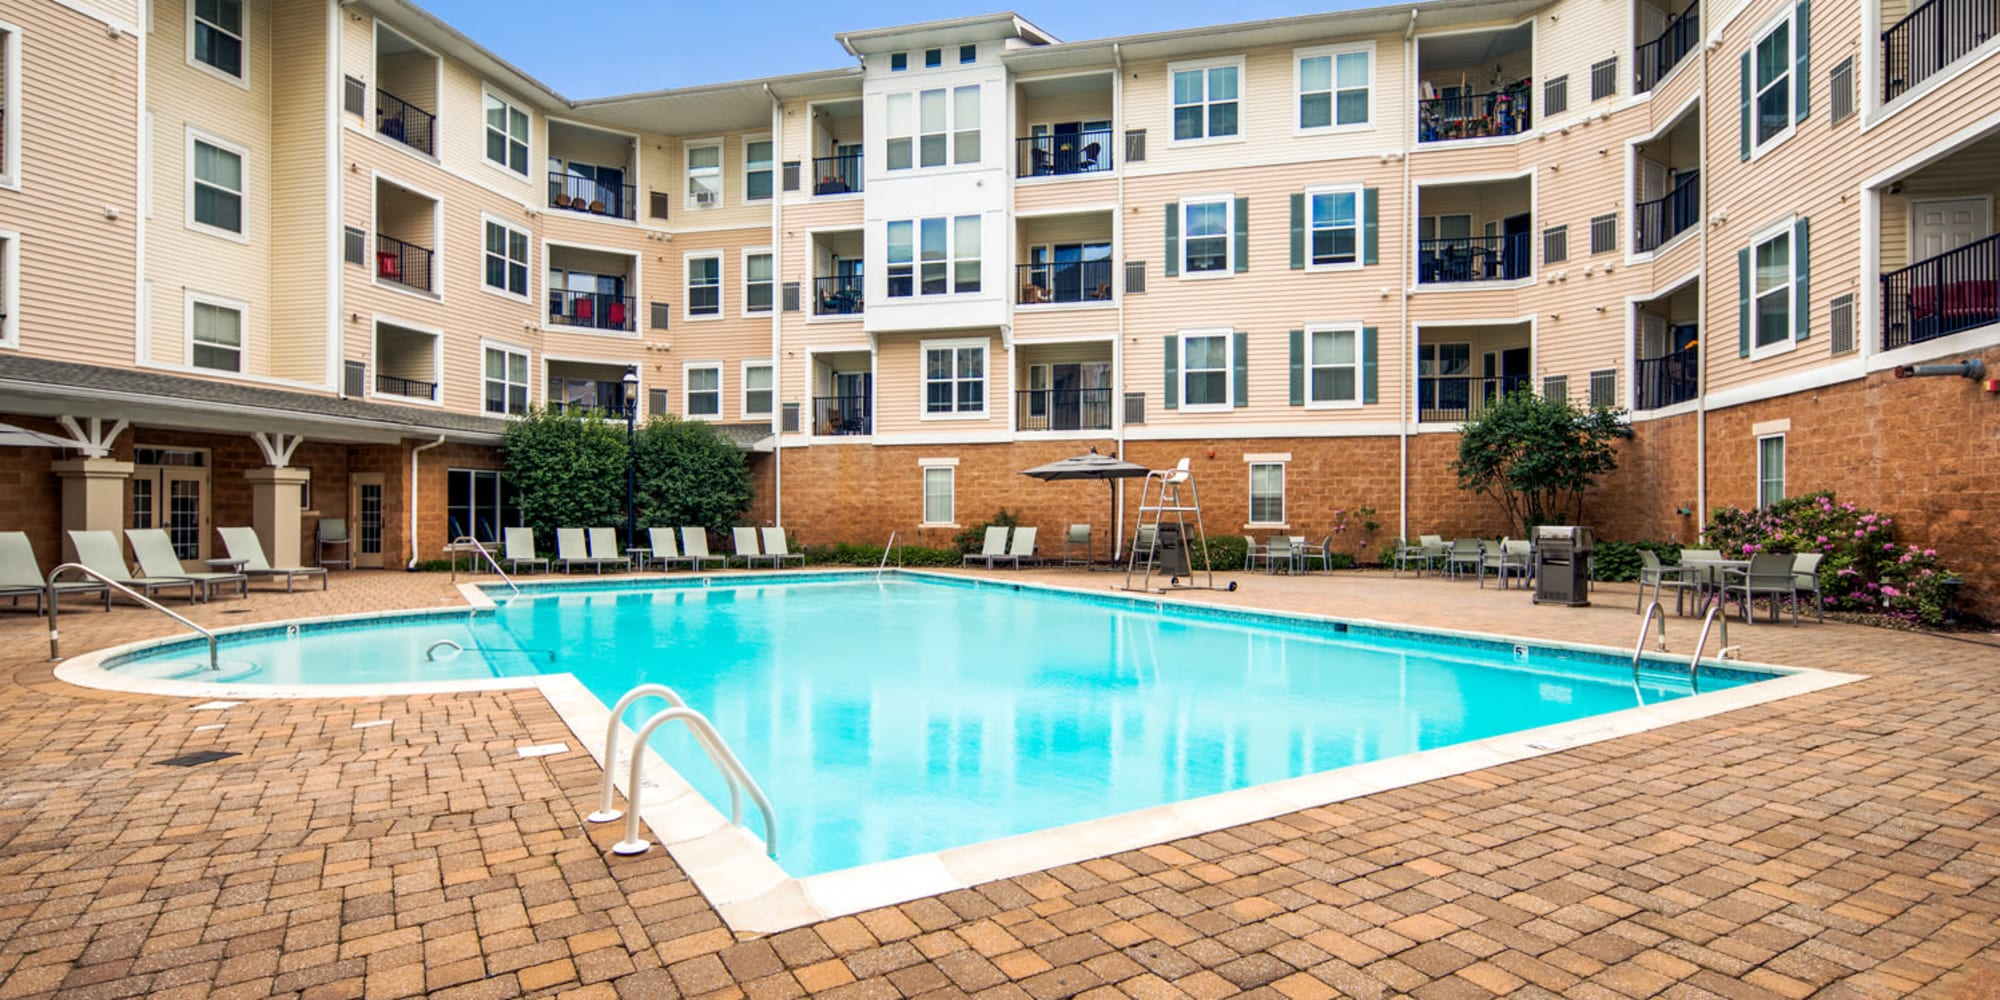 Resort style pool at Sofi Gaslight Commons in South Orange, New Jersey